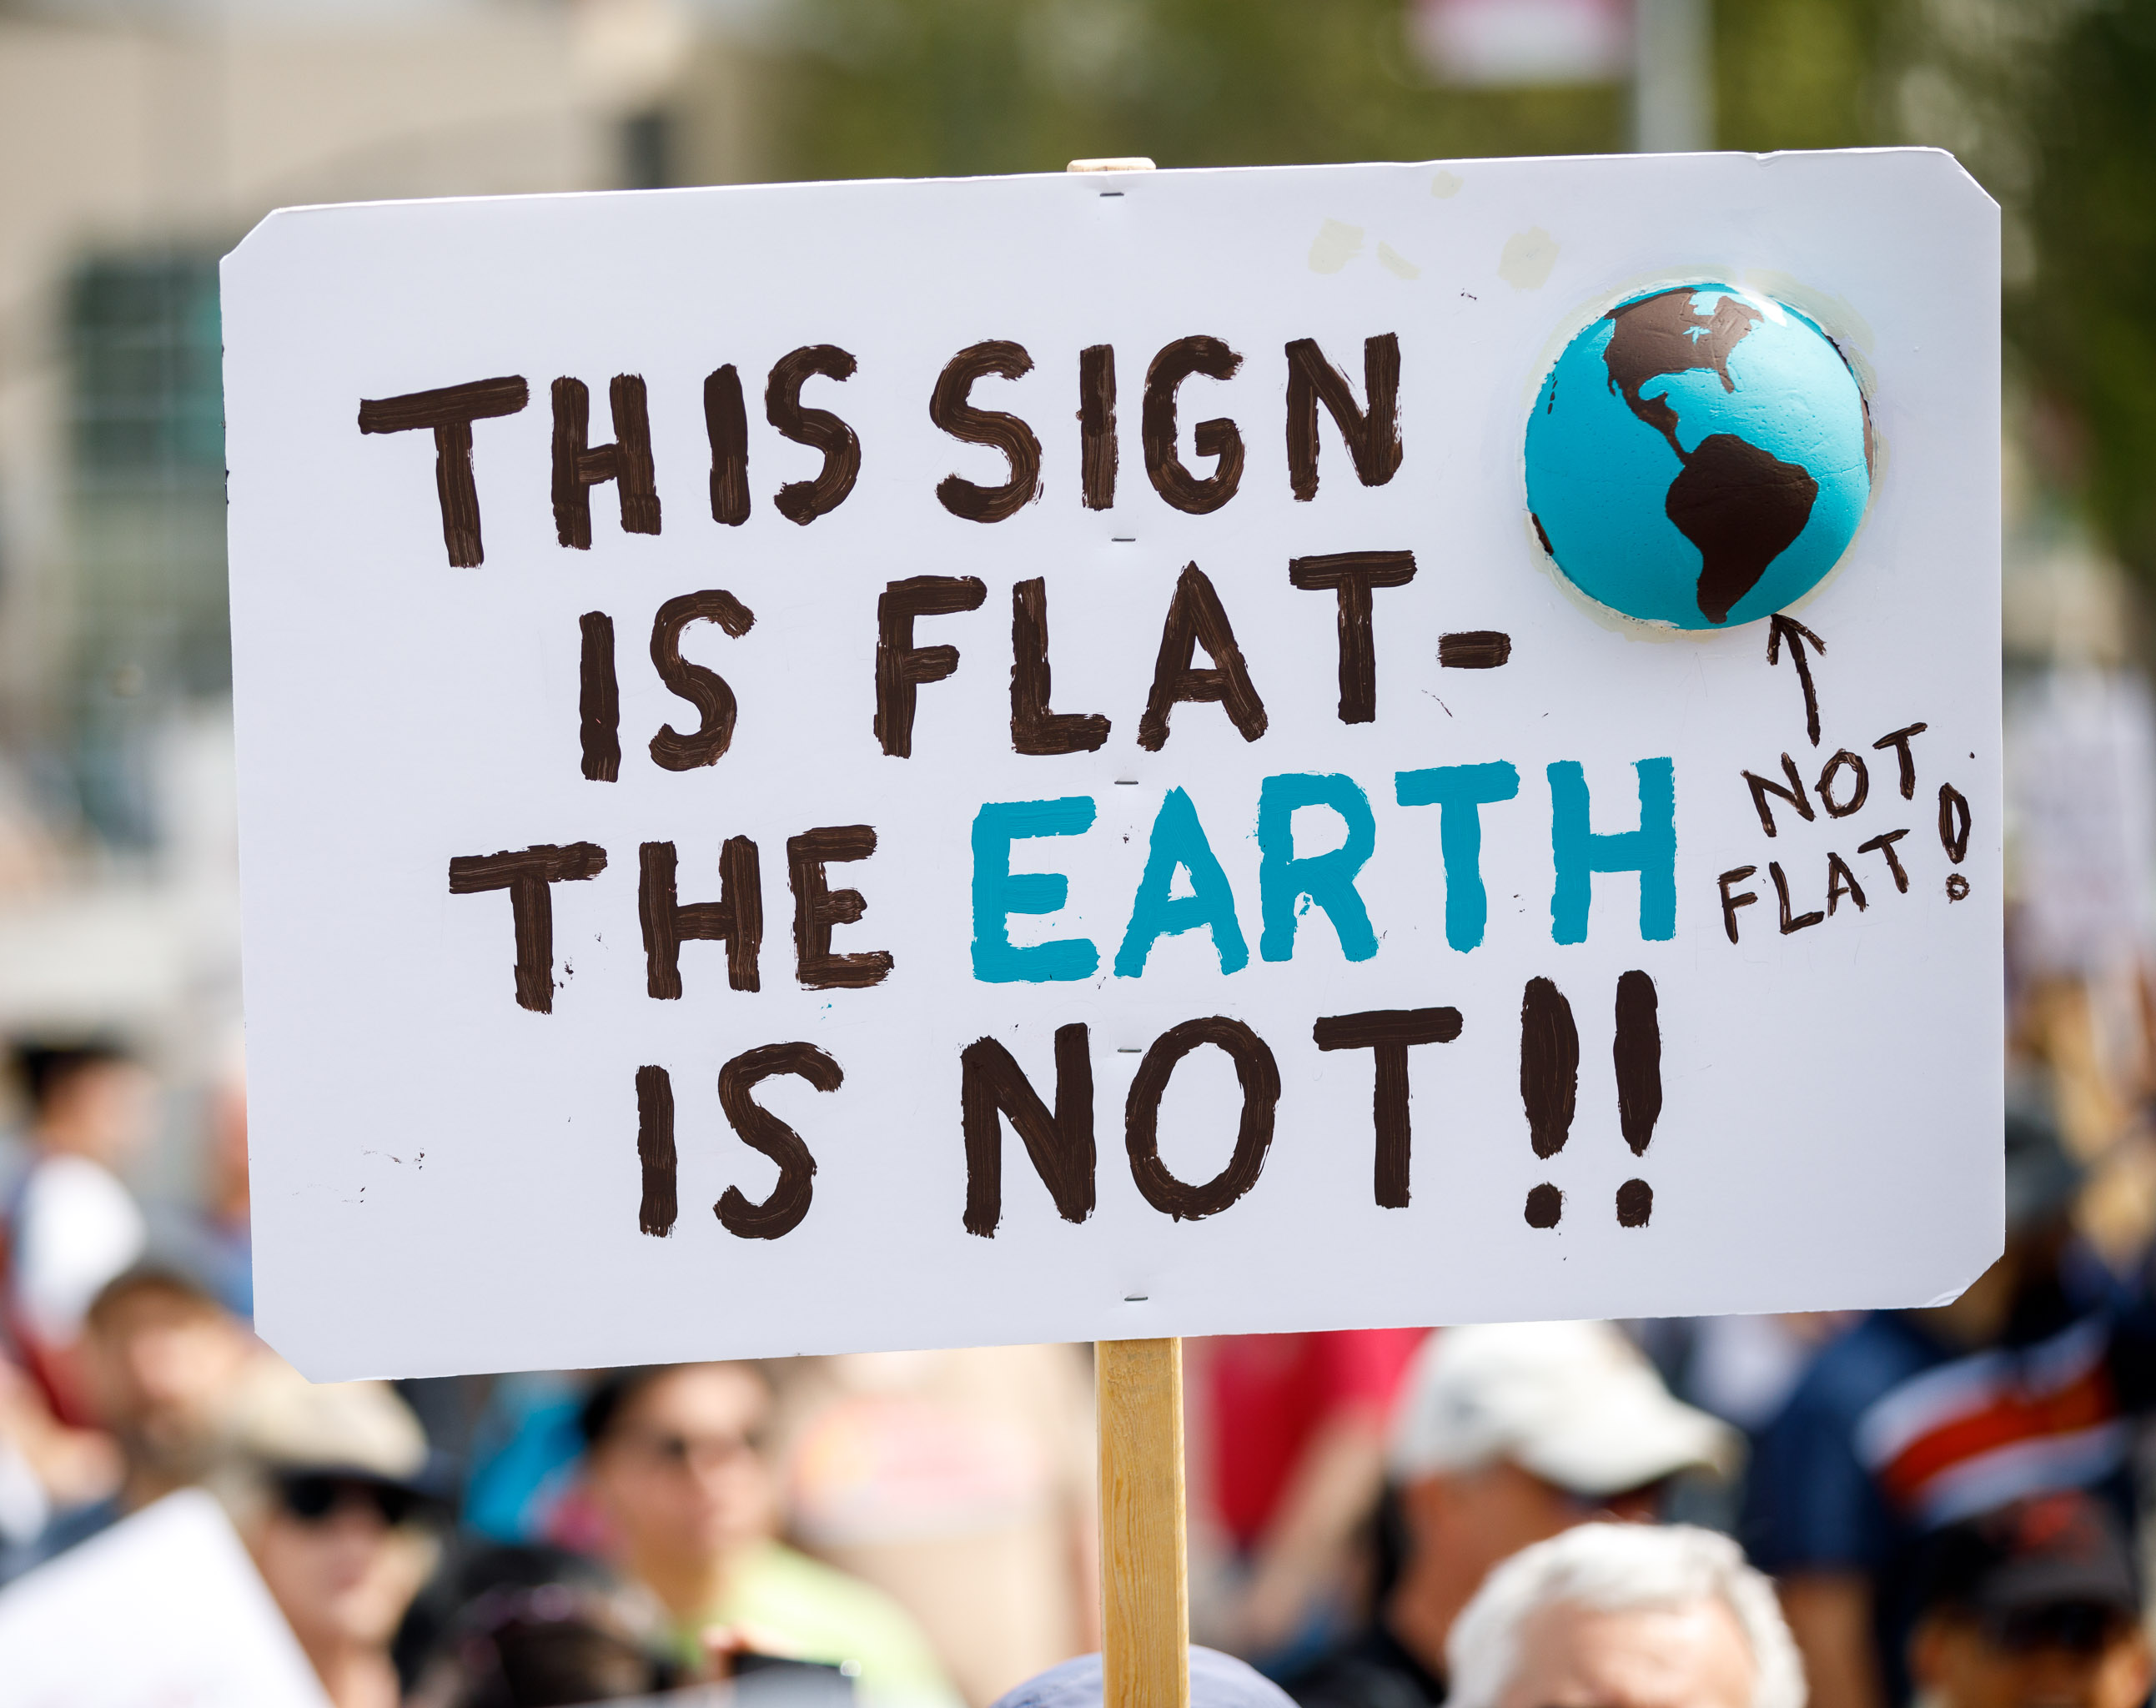 """""""This sign is flat -- the Earth is not!"""" said one sign at the Silicon Valley March for Science, urging people not to regress to an obsolete worldview science helped overturn."""